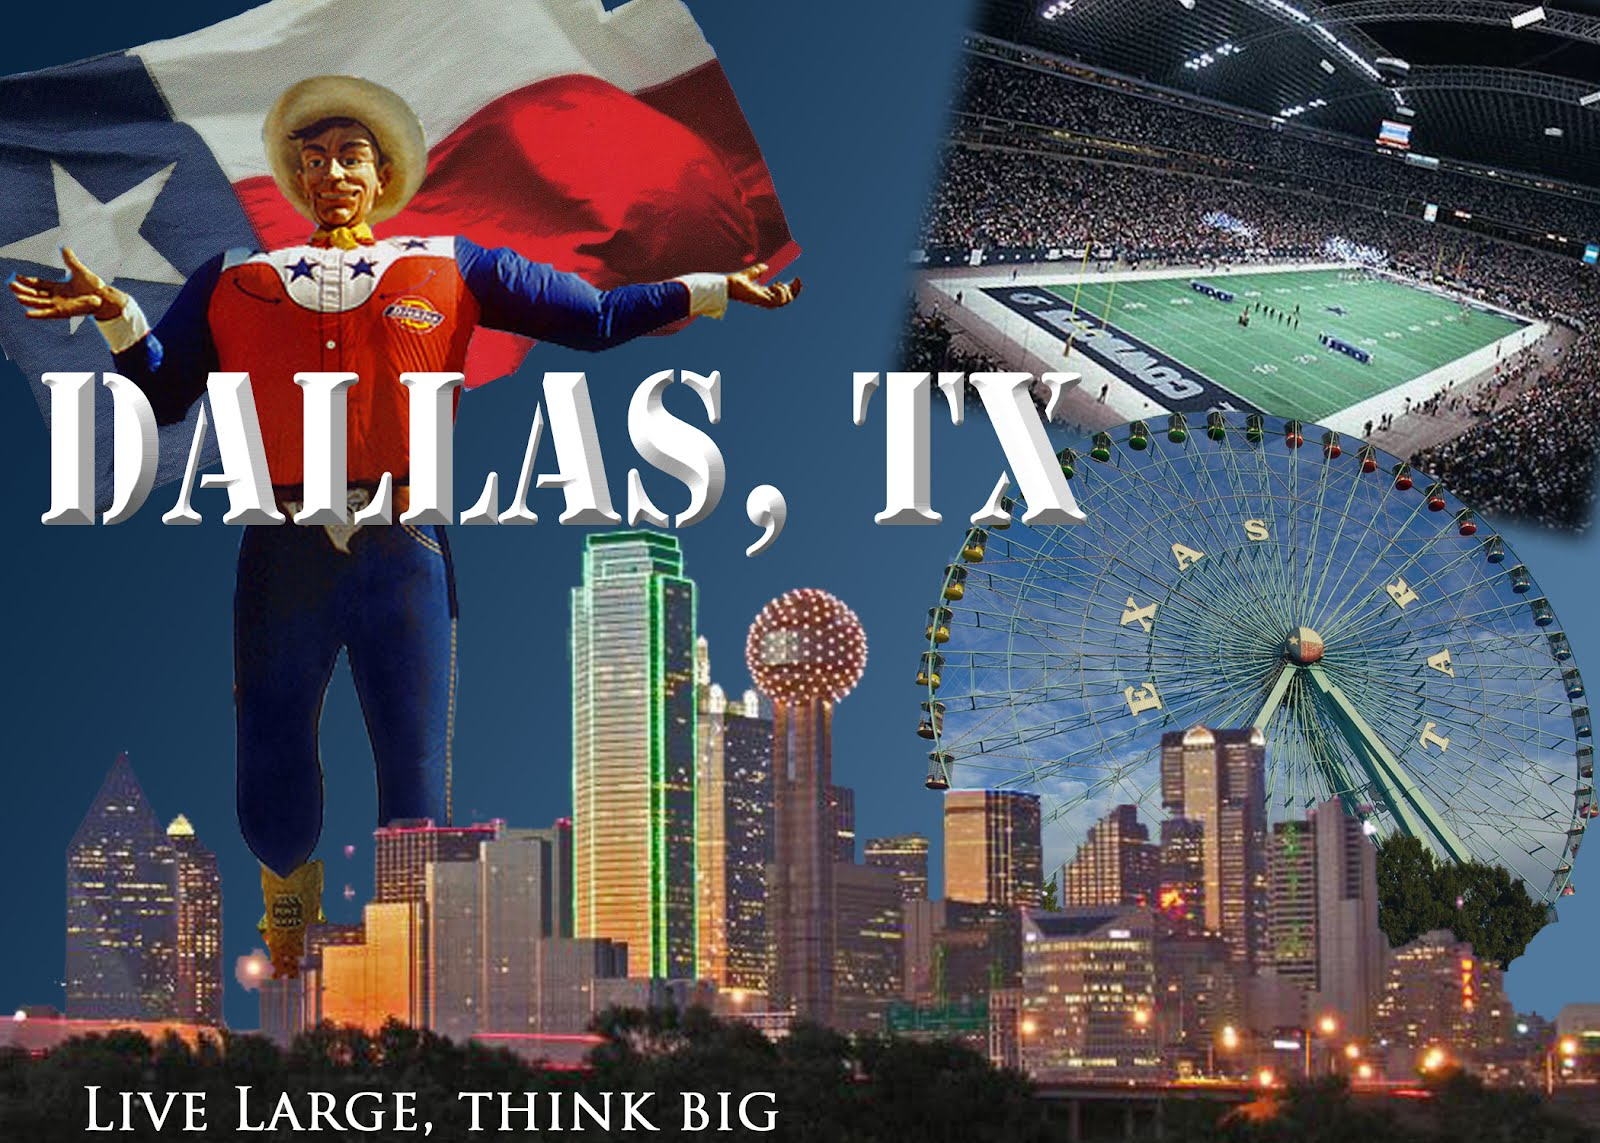 North Dallas -- The Real Texas Starts Here 